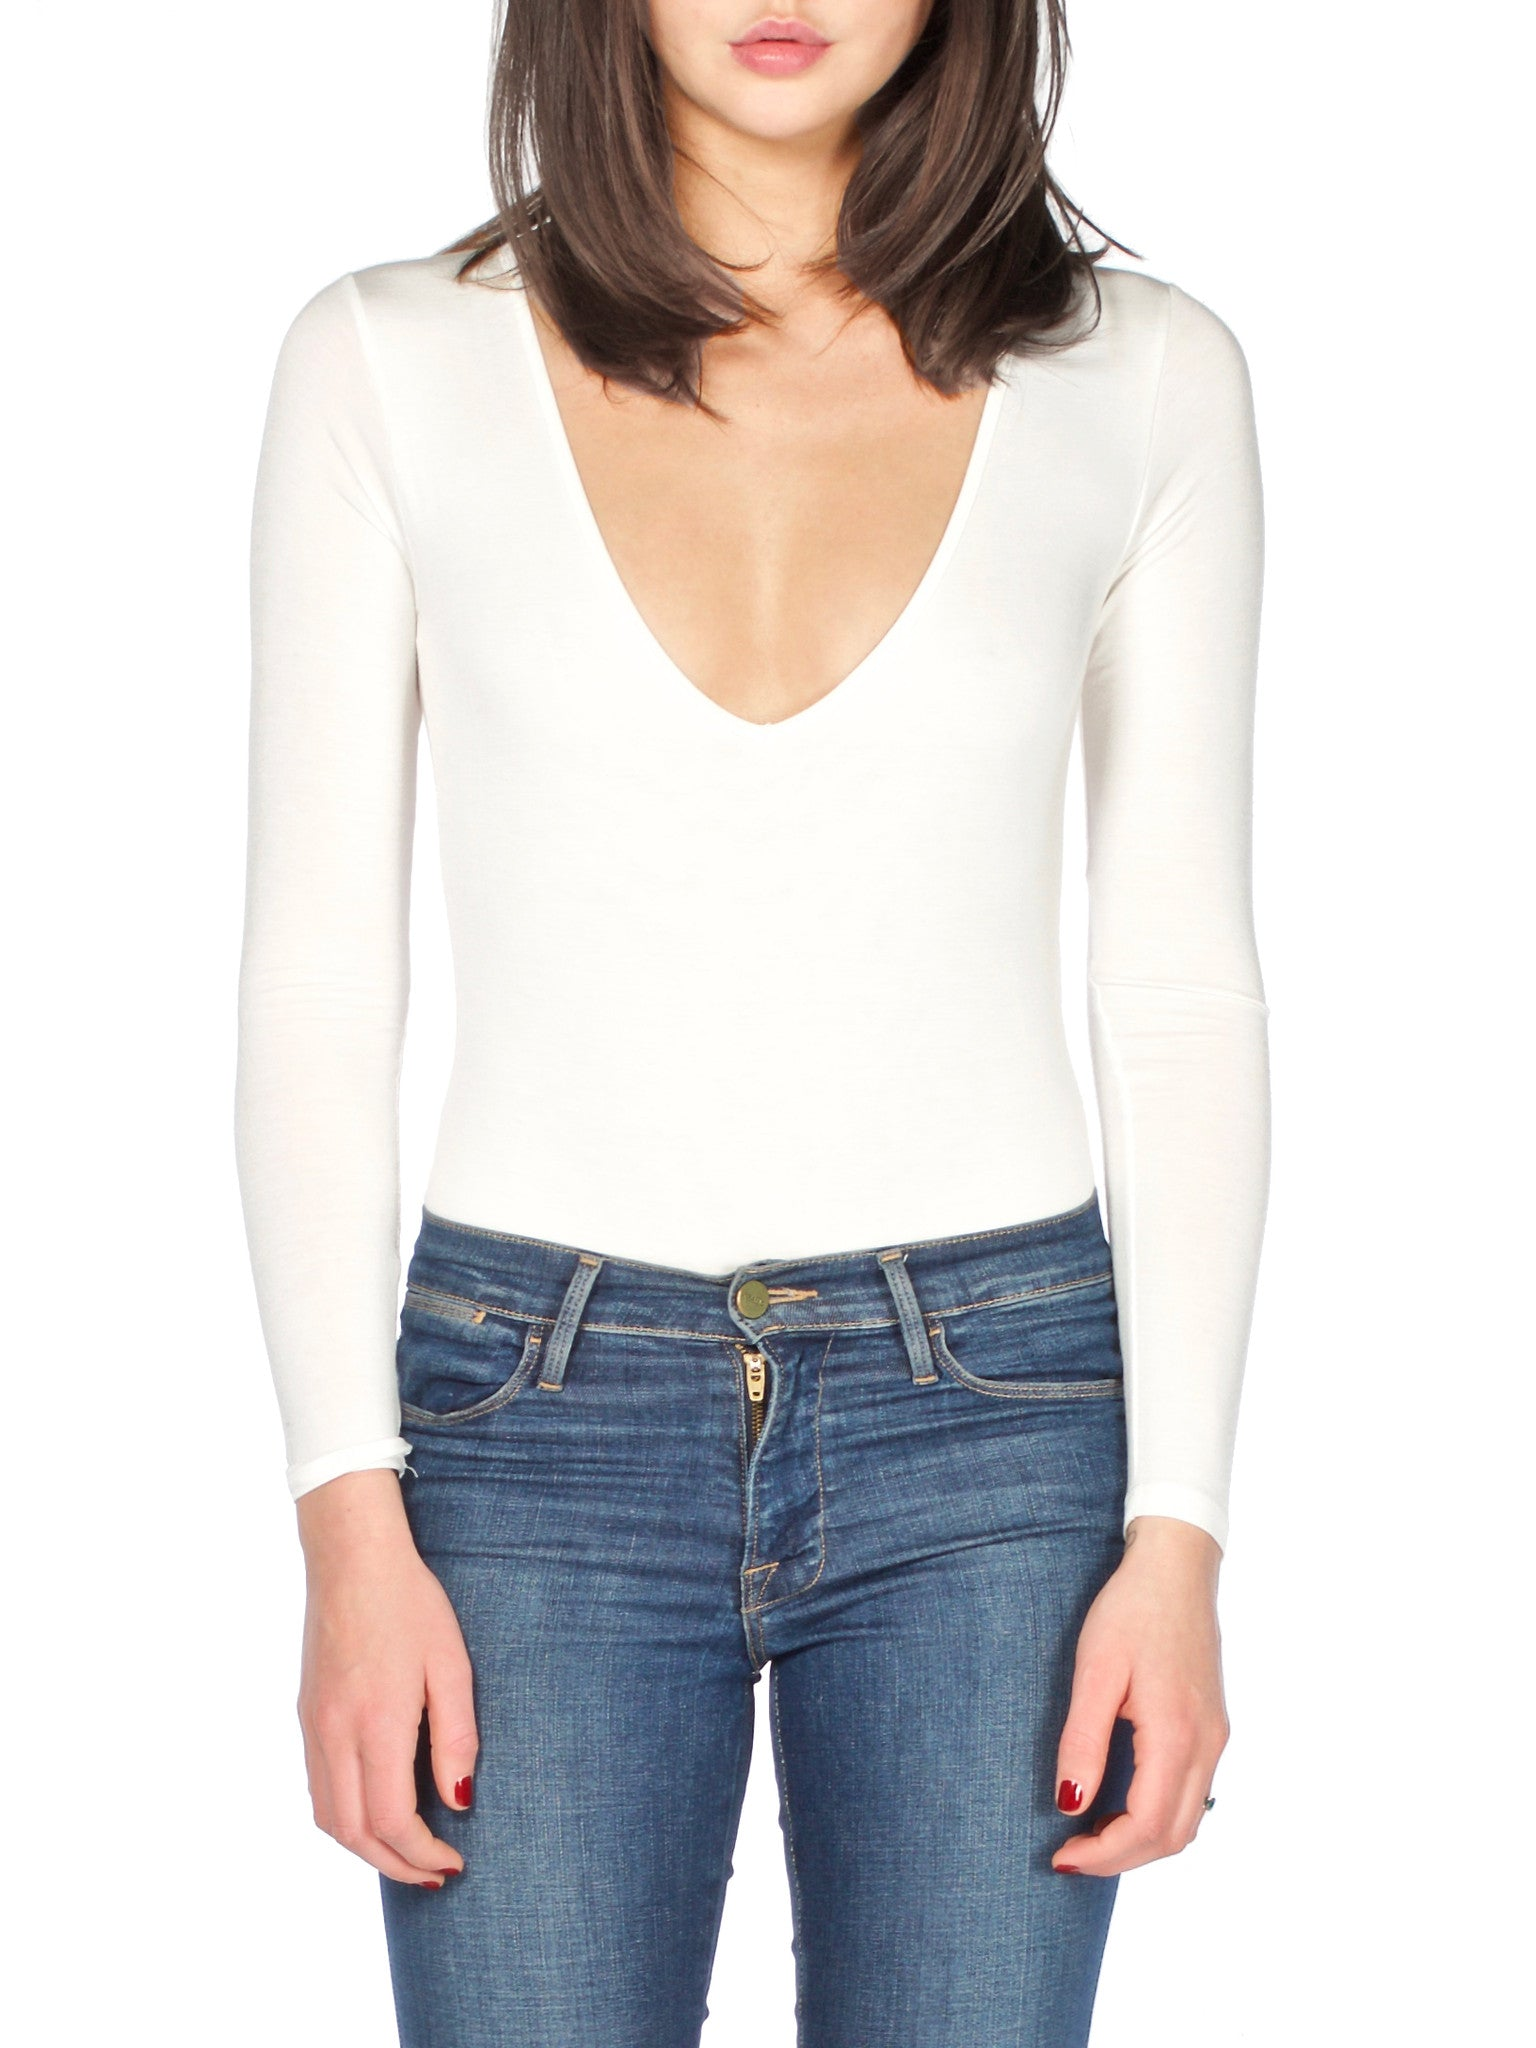 White Oh So Basic Bodysuit - PRADEGAL